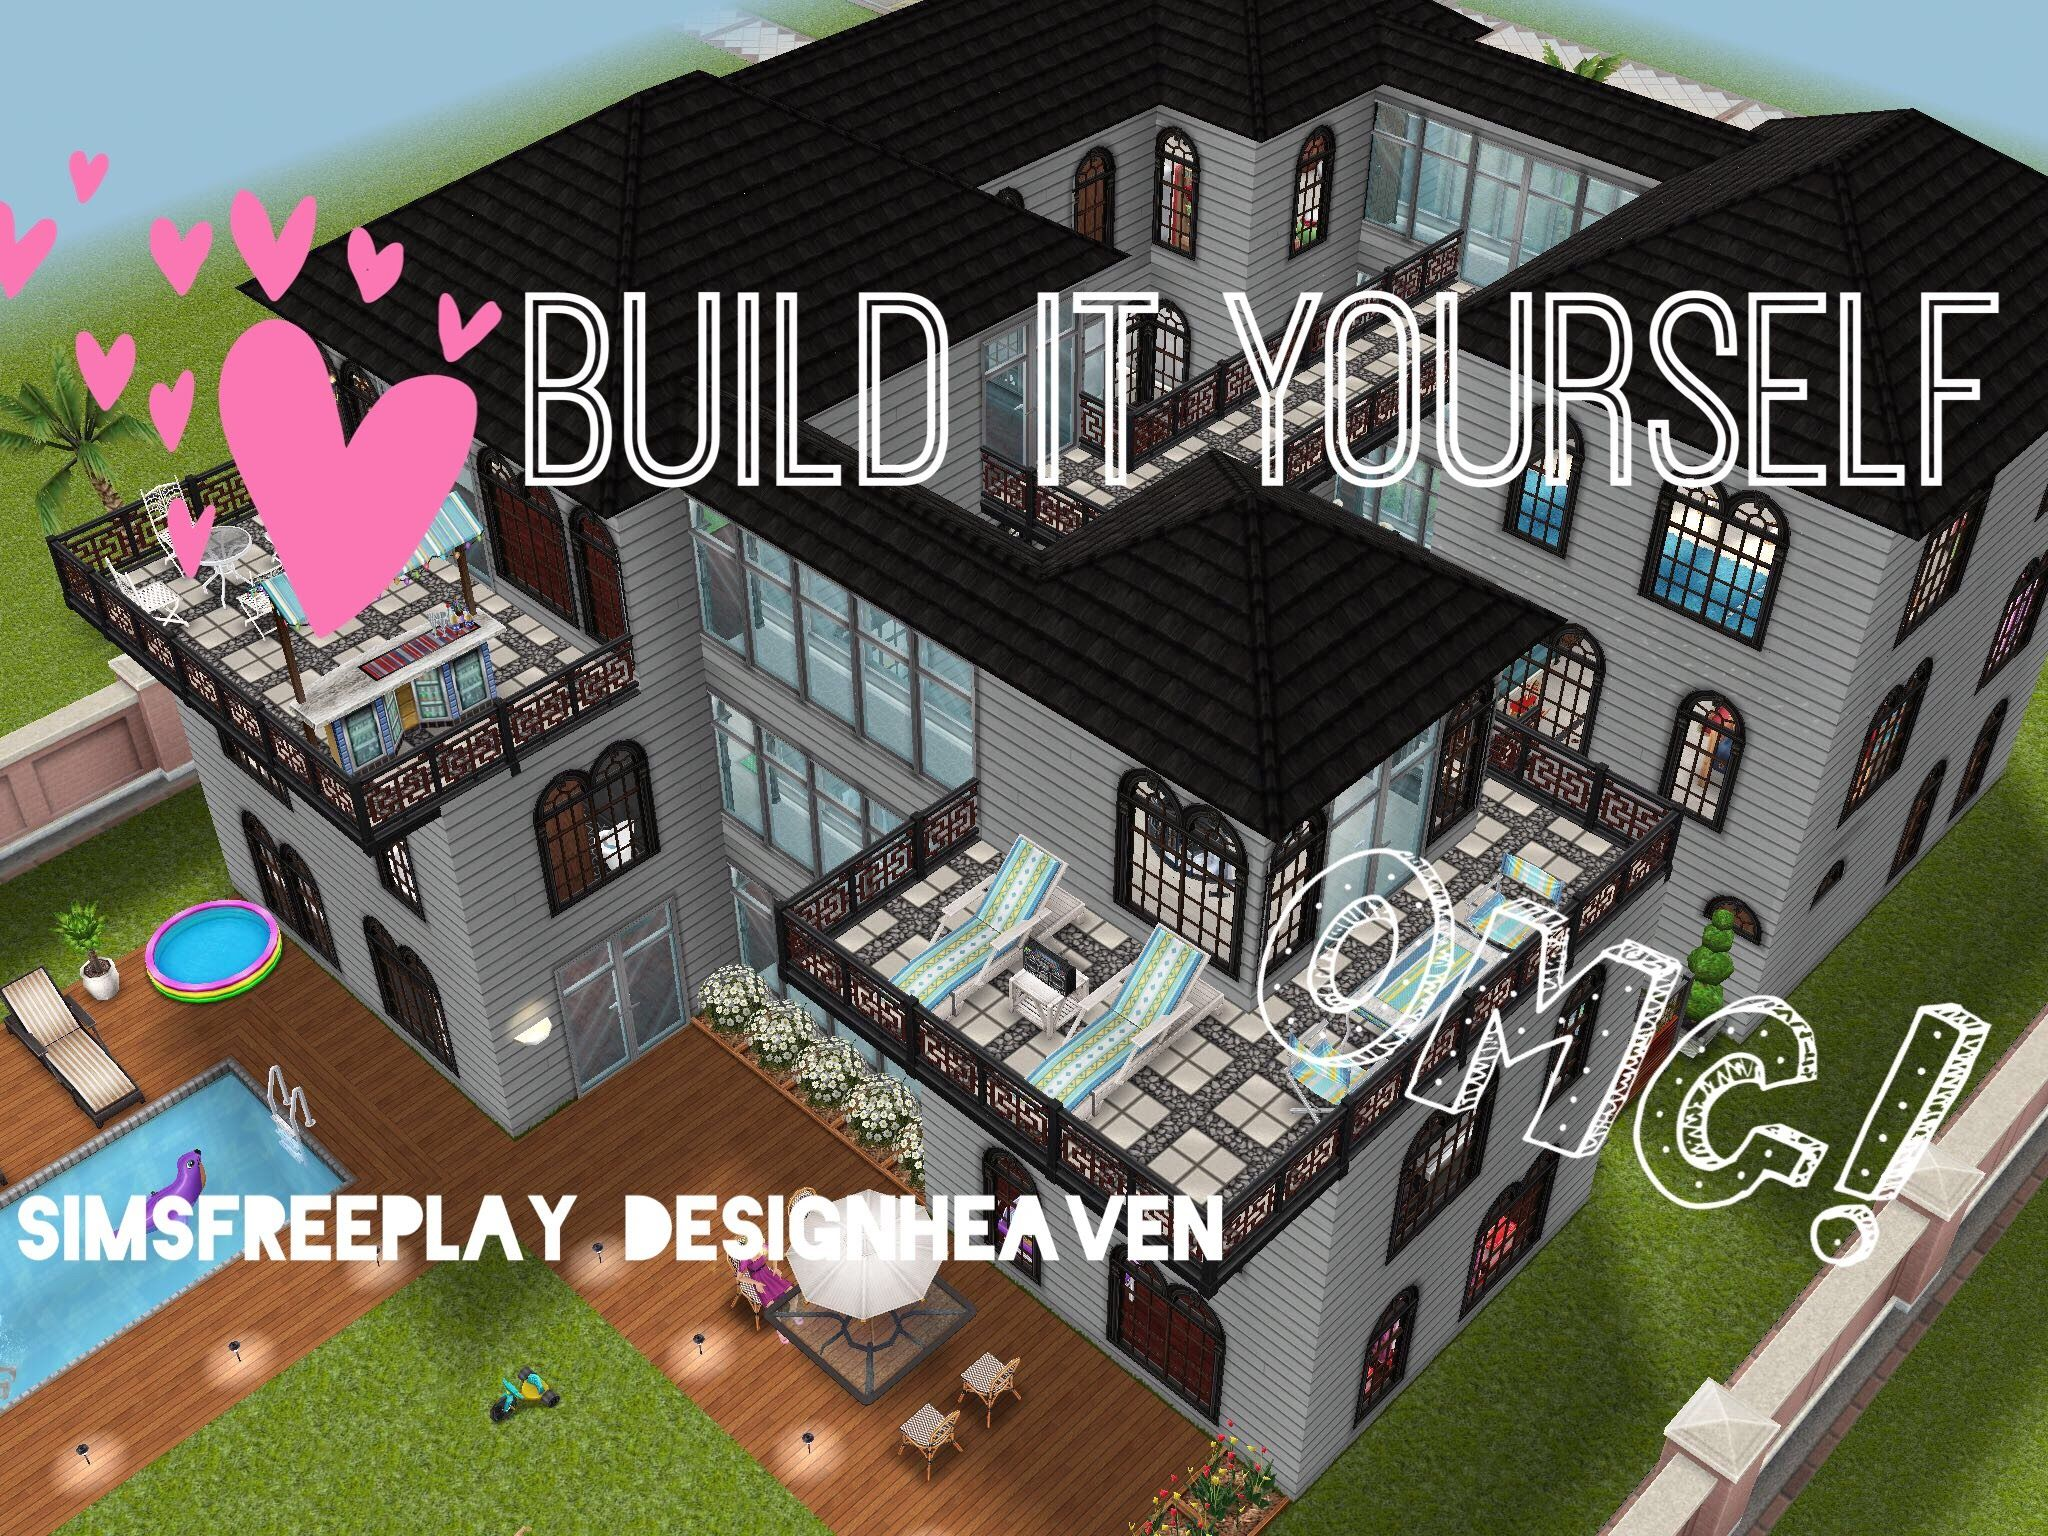 Sims Freeplay Build It Yourelf! Family Mansion The Sims